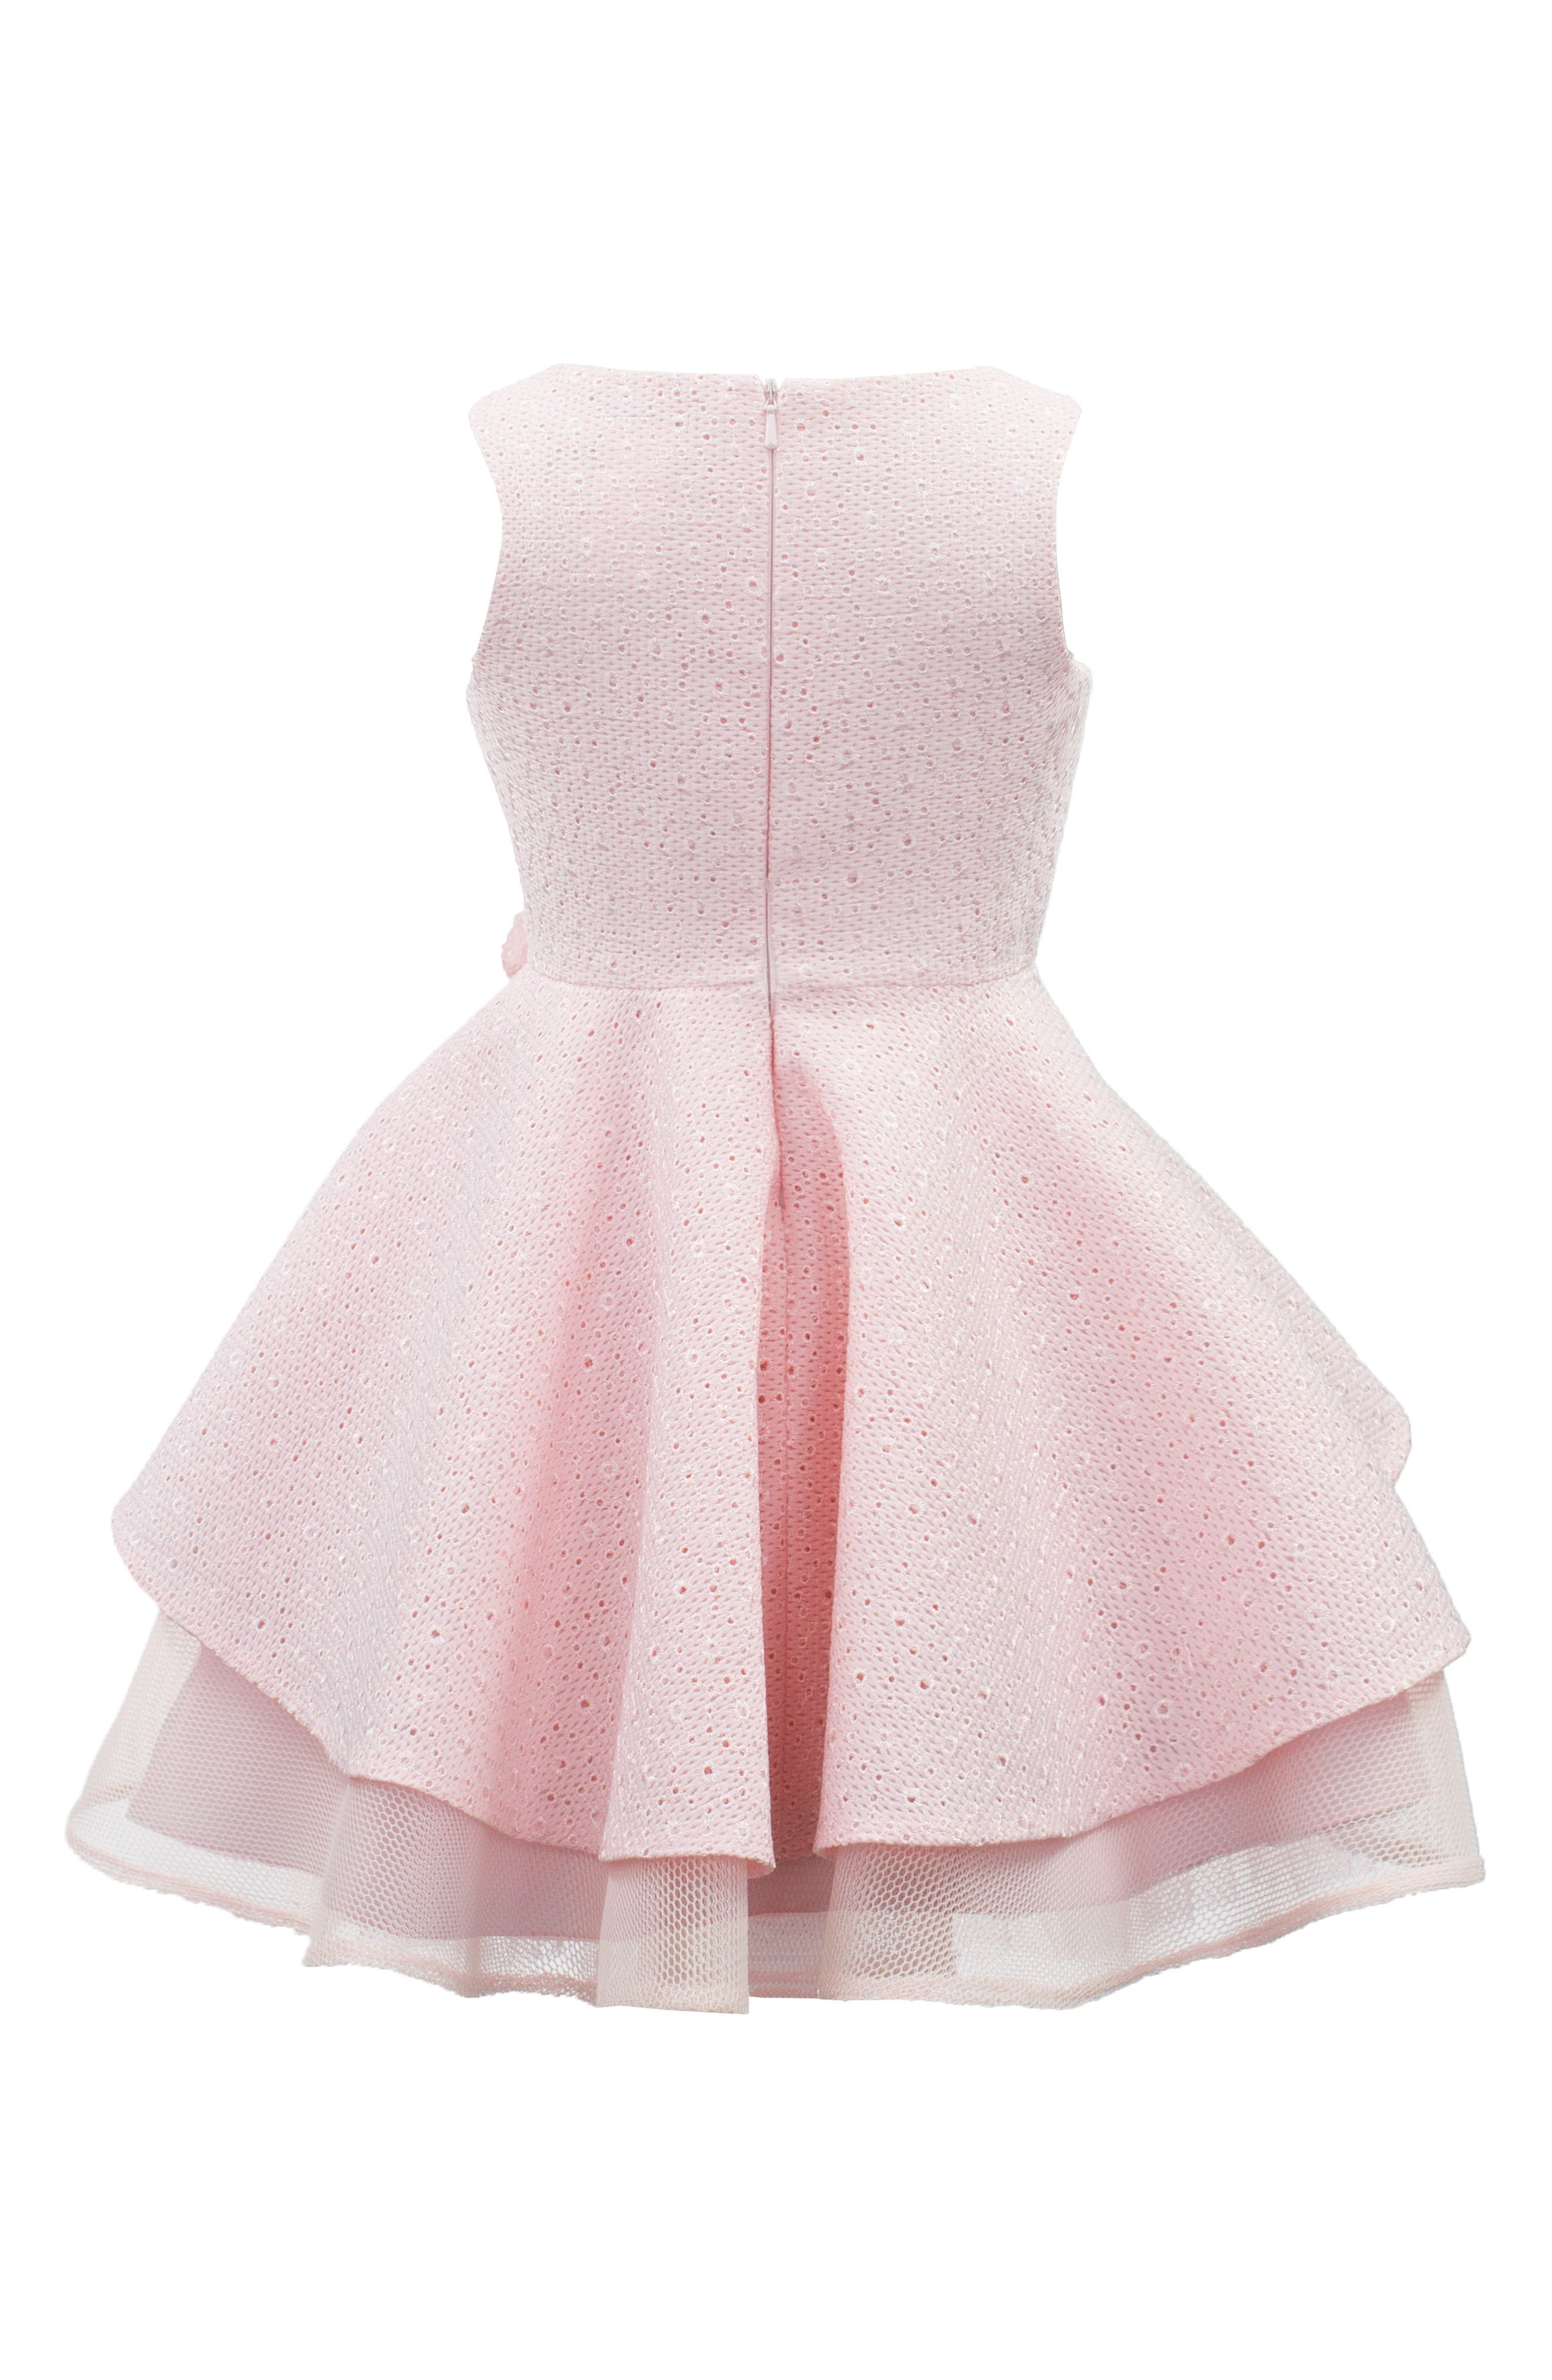 Broderie Anglaise Techno Mesh Dress,                             Alternate thumbnail 2, color,                             Pink